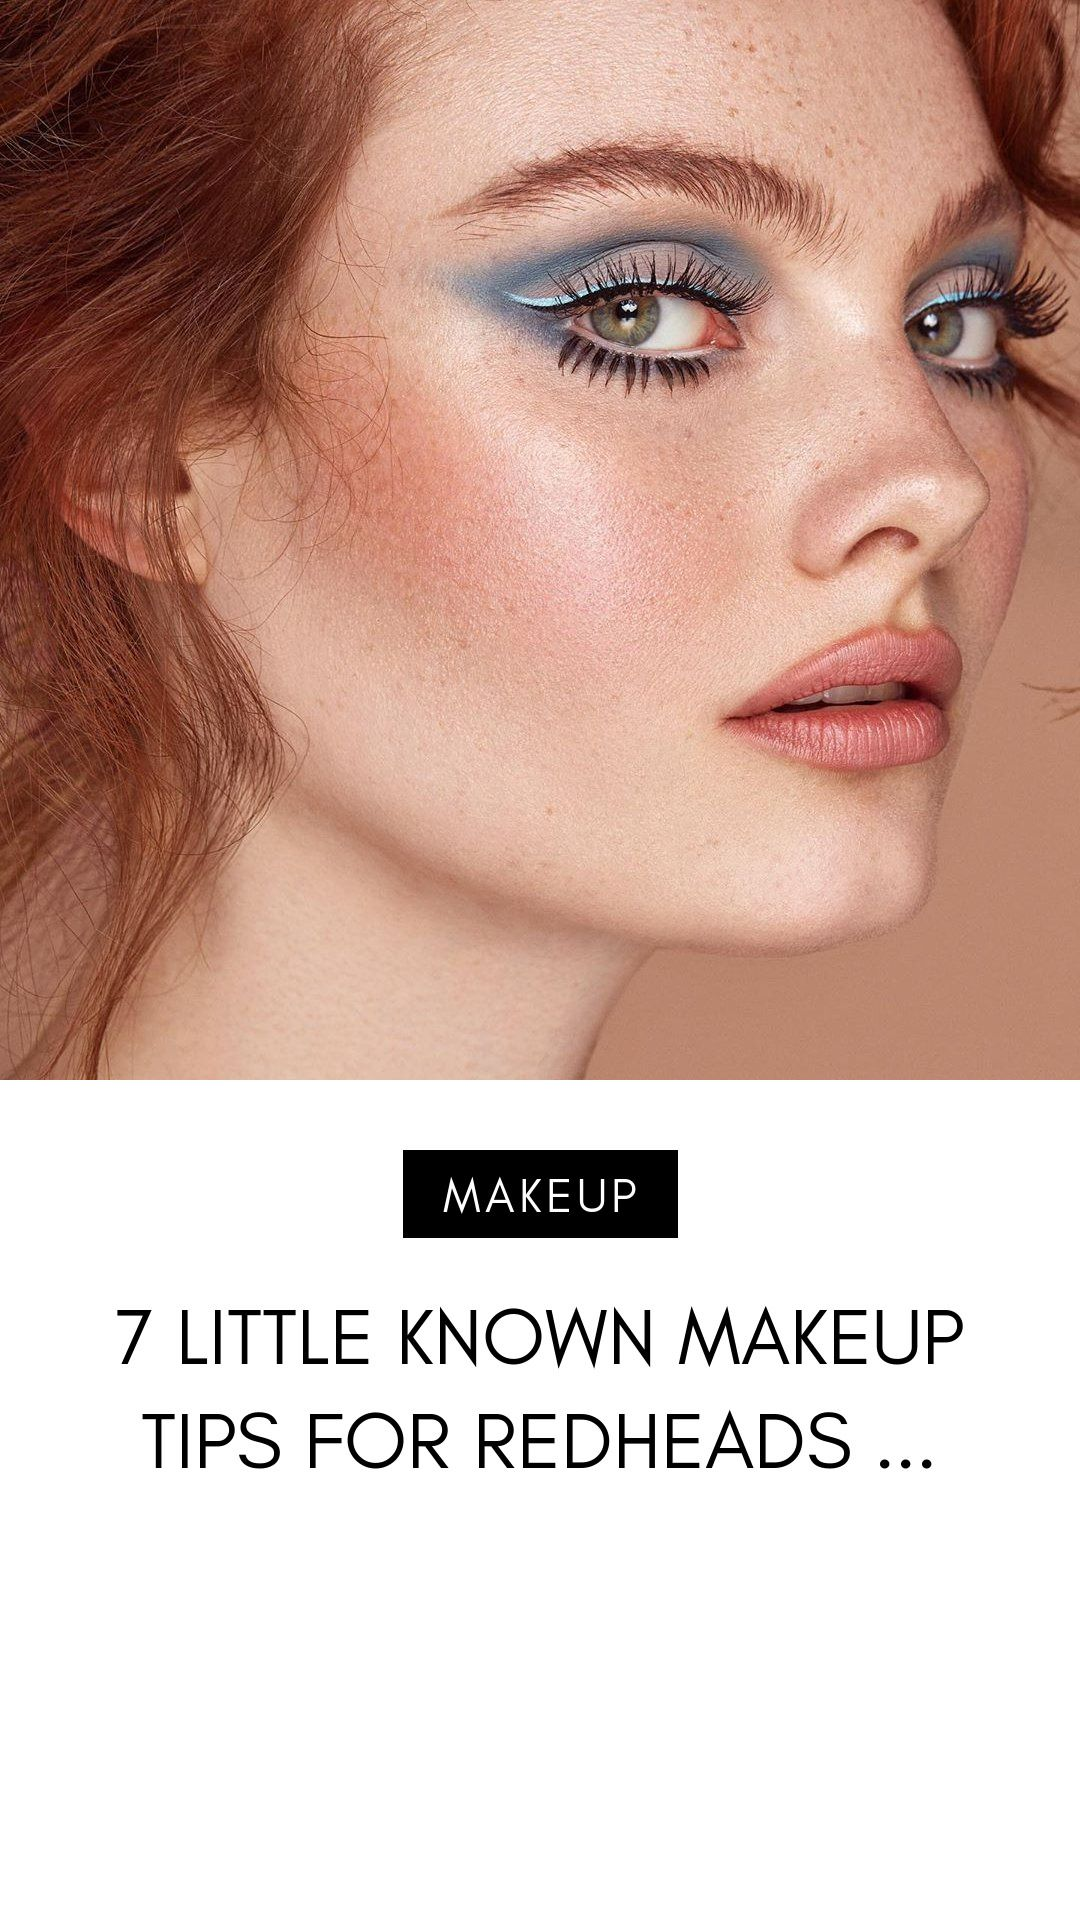 7 Little Known Makeup Tips for Redheads in 2020